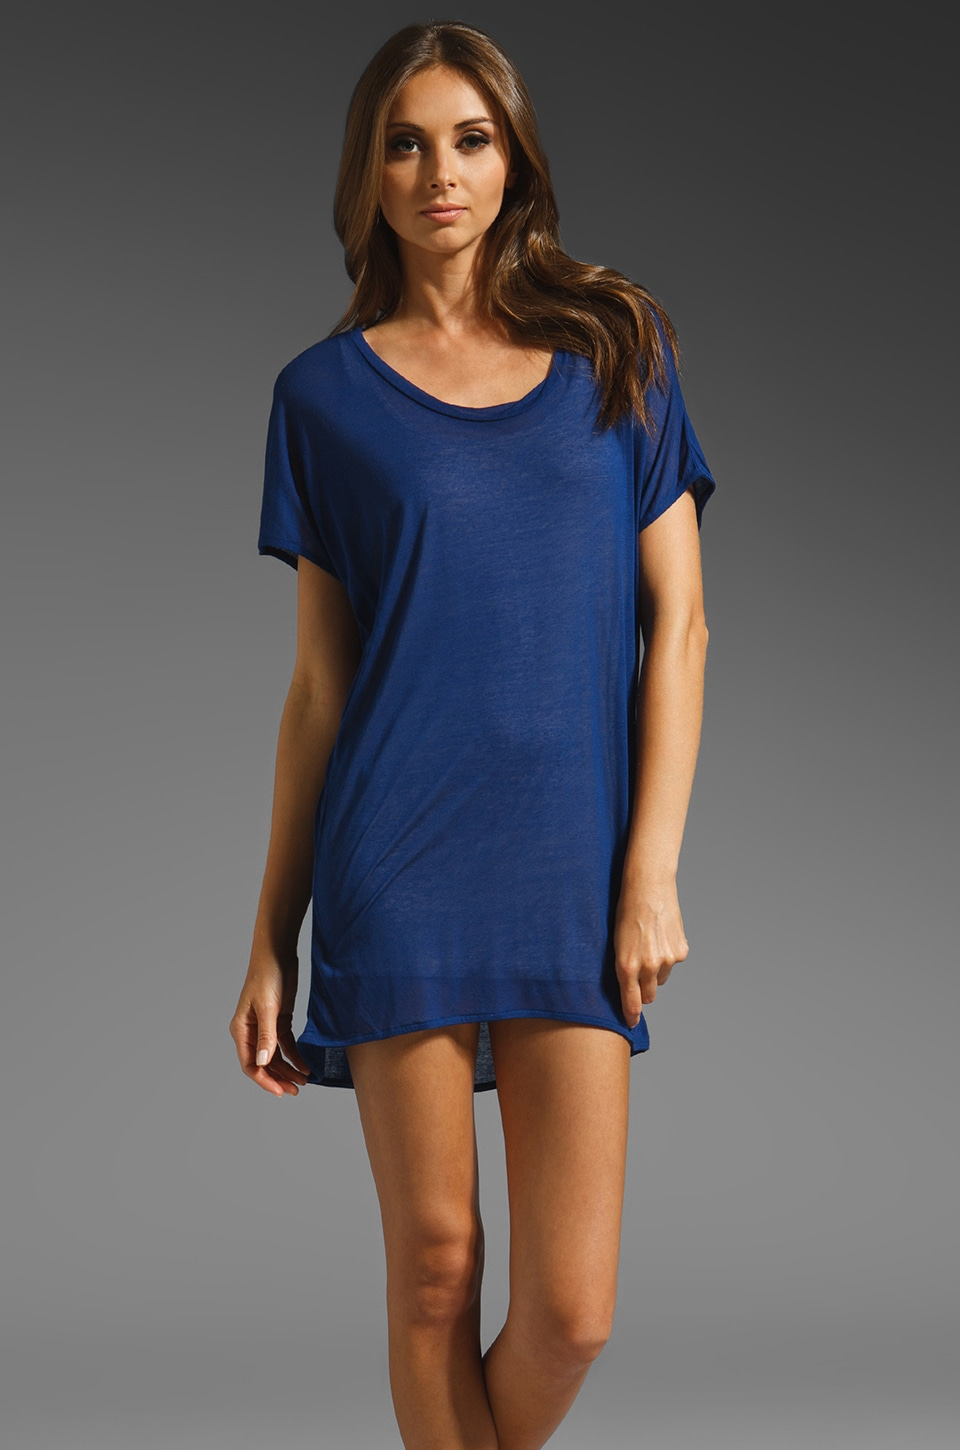 American Vintage Cape Canaveral T Shirt Dress in Electric Blue